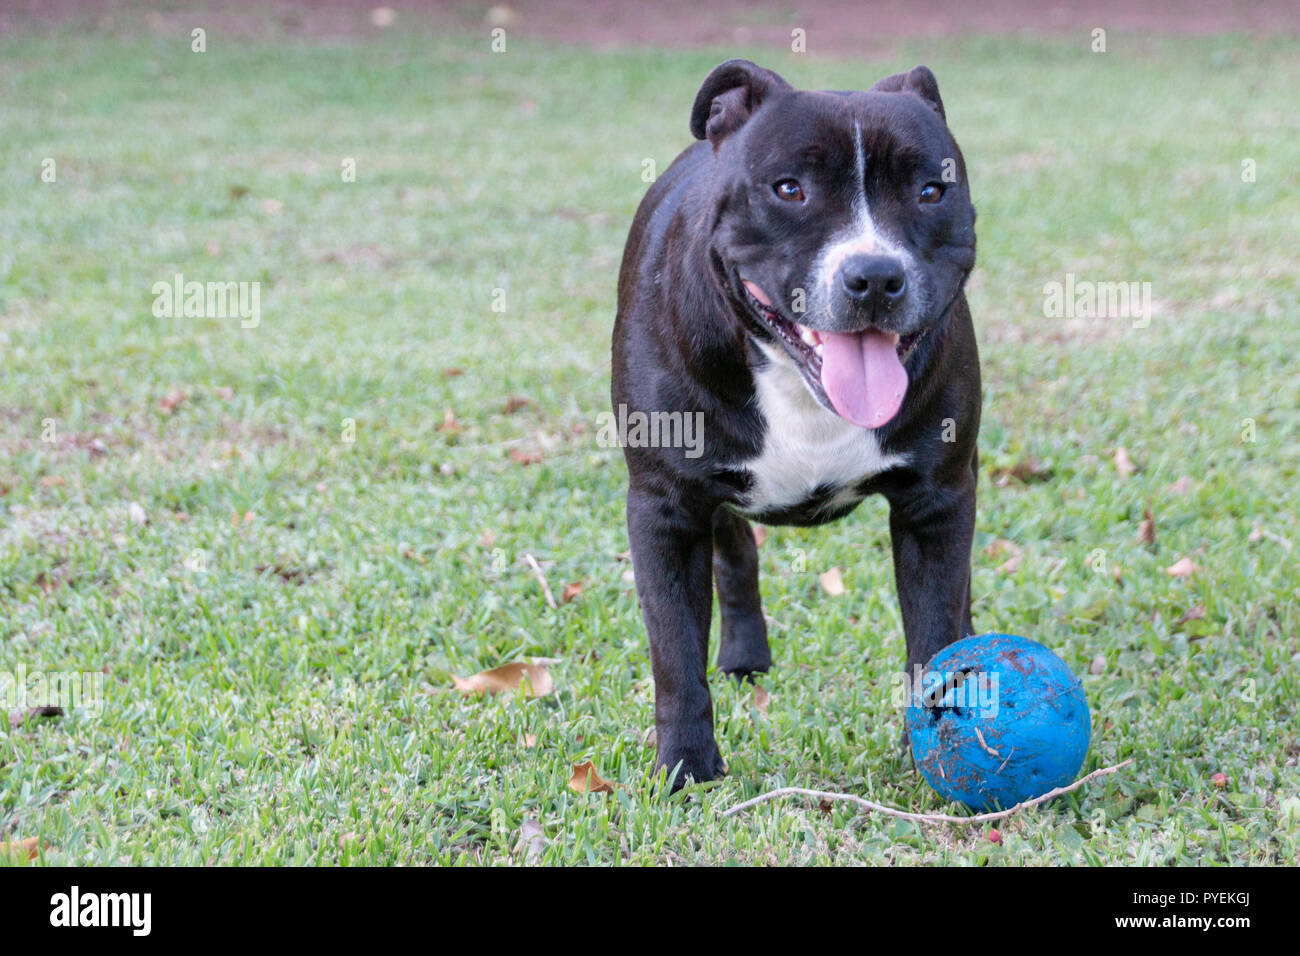 A close up view of a black and white dog playing with her blue chew toy in the garden - Stock Image